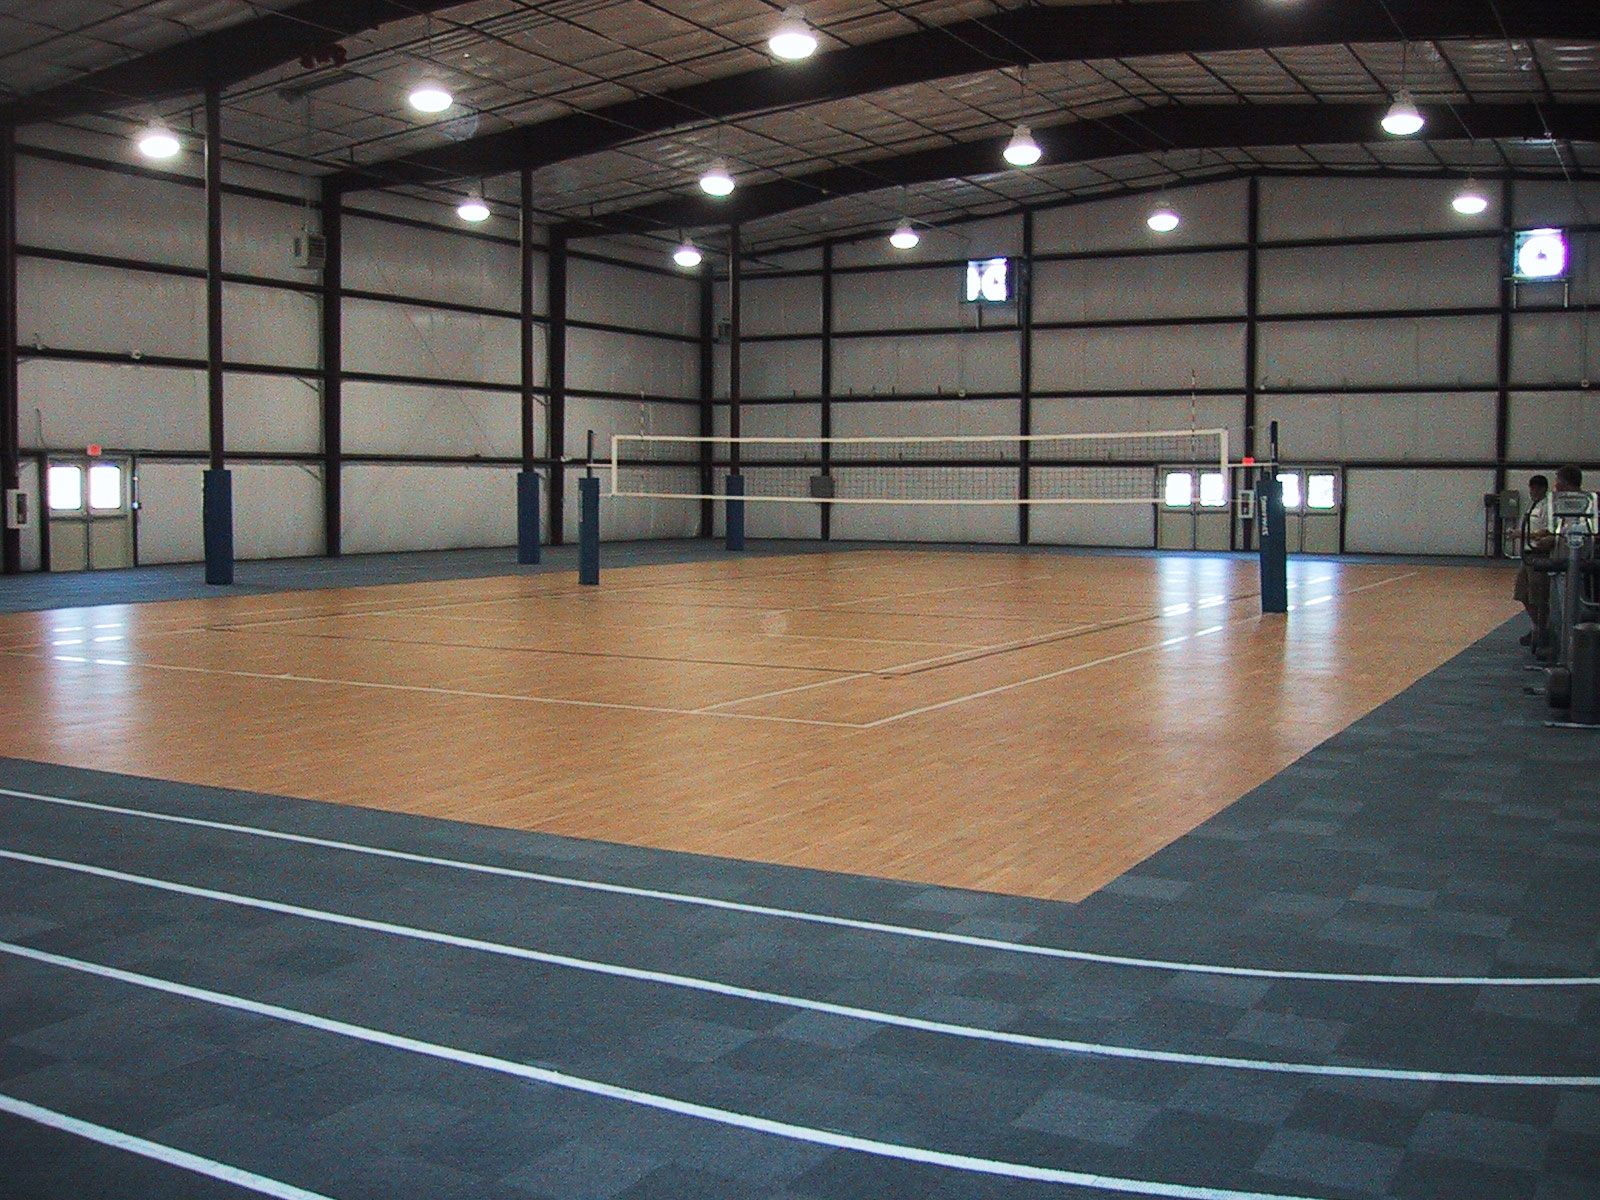 Modern Sport Court Cost Volleyball Design For Indoor Volleyball Court Cost Estimate Indoor Volleyball Bokuto Koutarou Bokuto Koutaro